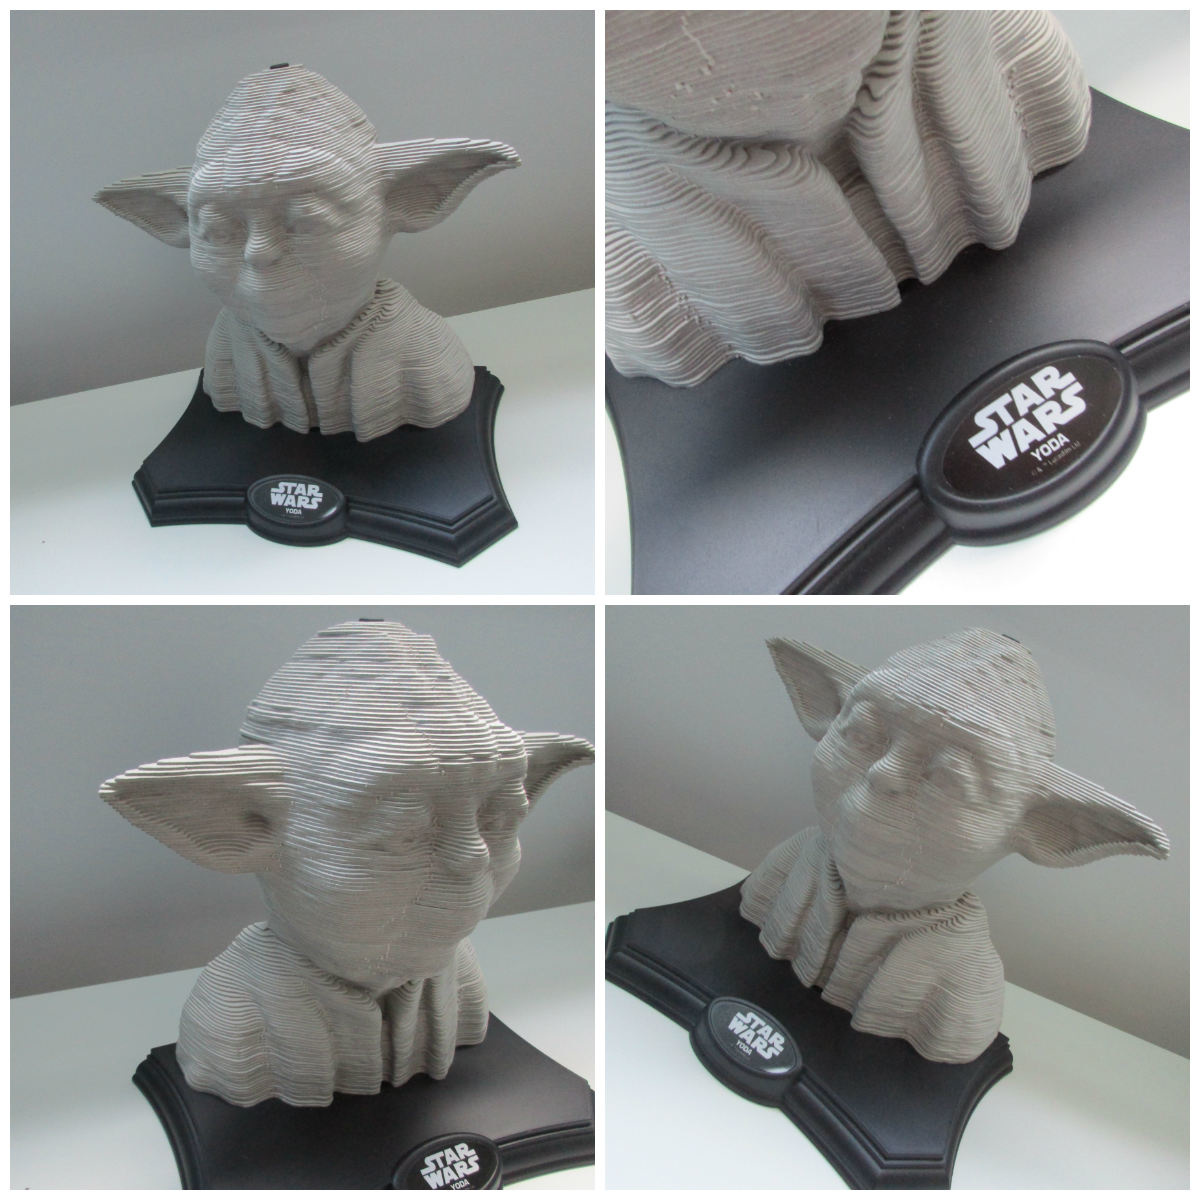 3d-puslespil-disney-educa-star-wars-yoda-darth-vader-fiktion-kultur-maki-14